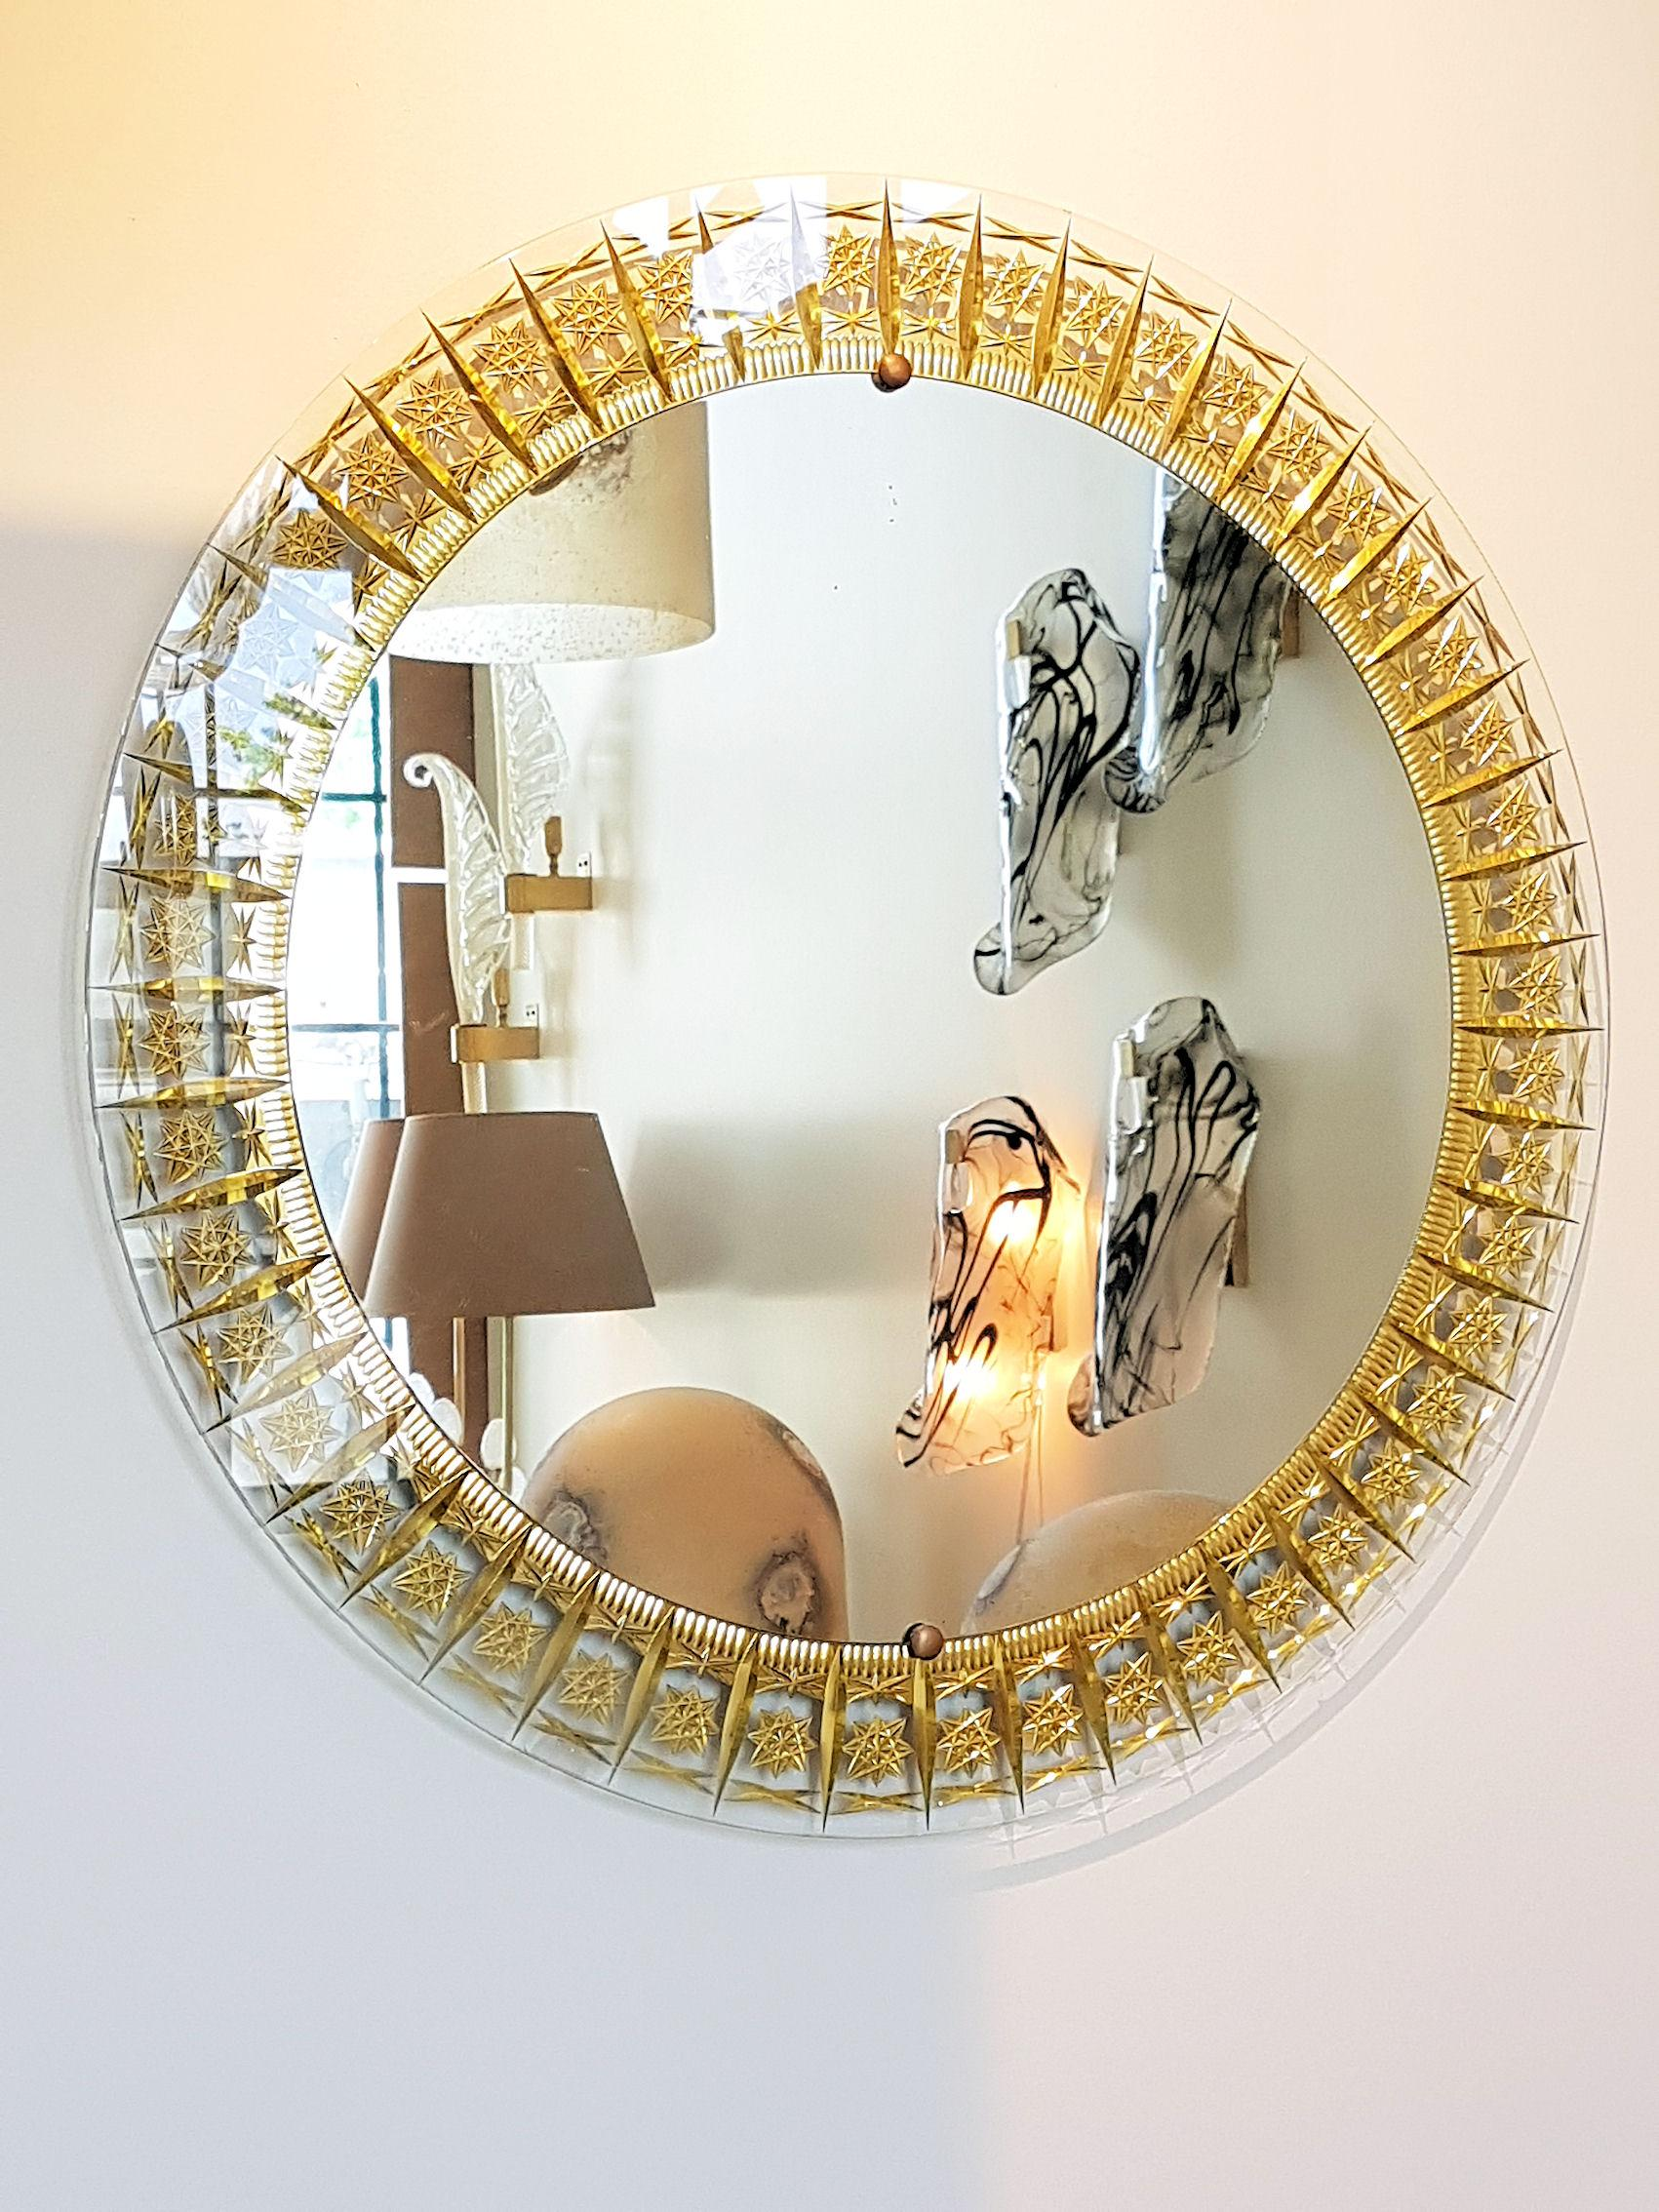 Round Mid Century Modern Mirror Glass Gold Carved Frame By Cristal Arte Italy